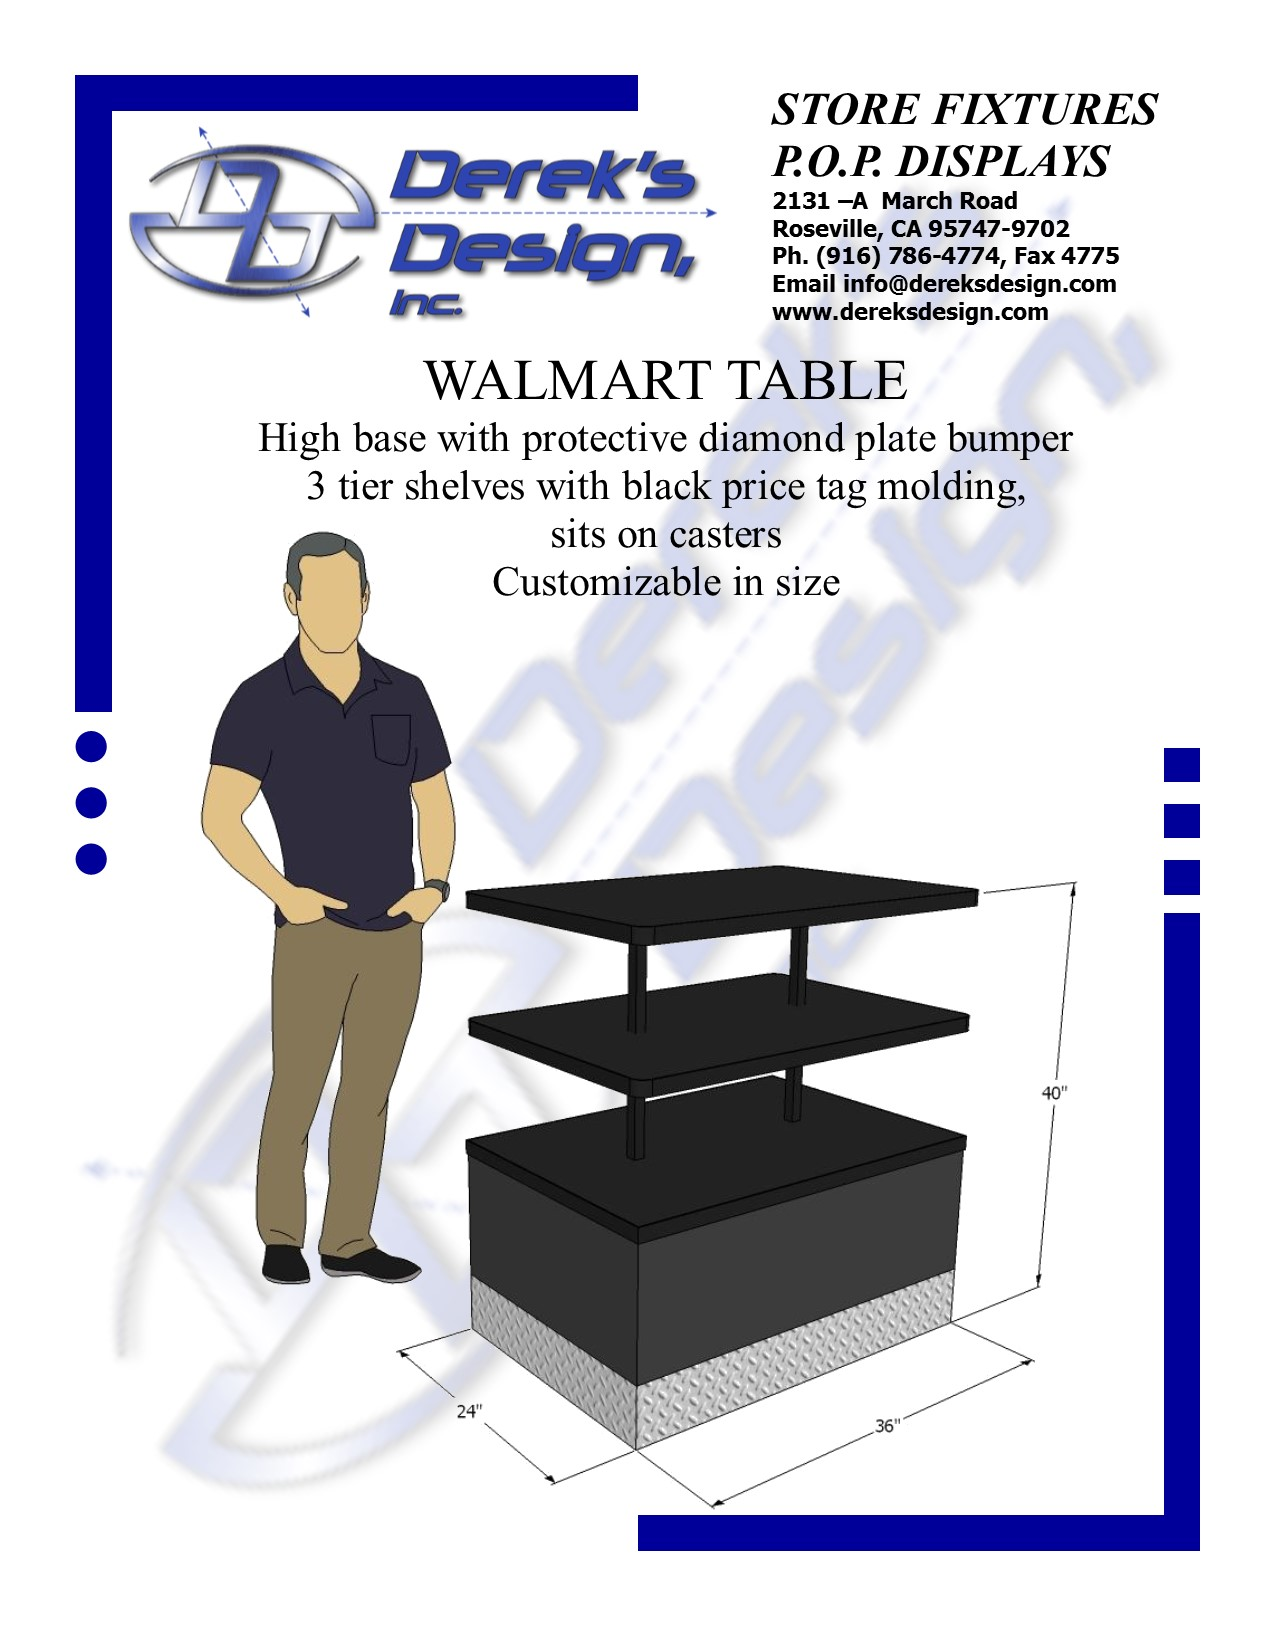 "<a href=""mailto:orders@dereksdesign.com?subject=Walmart%Table&body=http://www.dereksdesign.com/gallery/tables-shop-a-rounds/walmart-table/"">Click here for inquiry </a>"